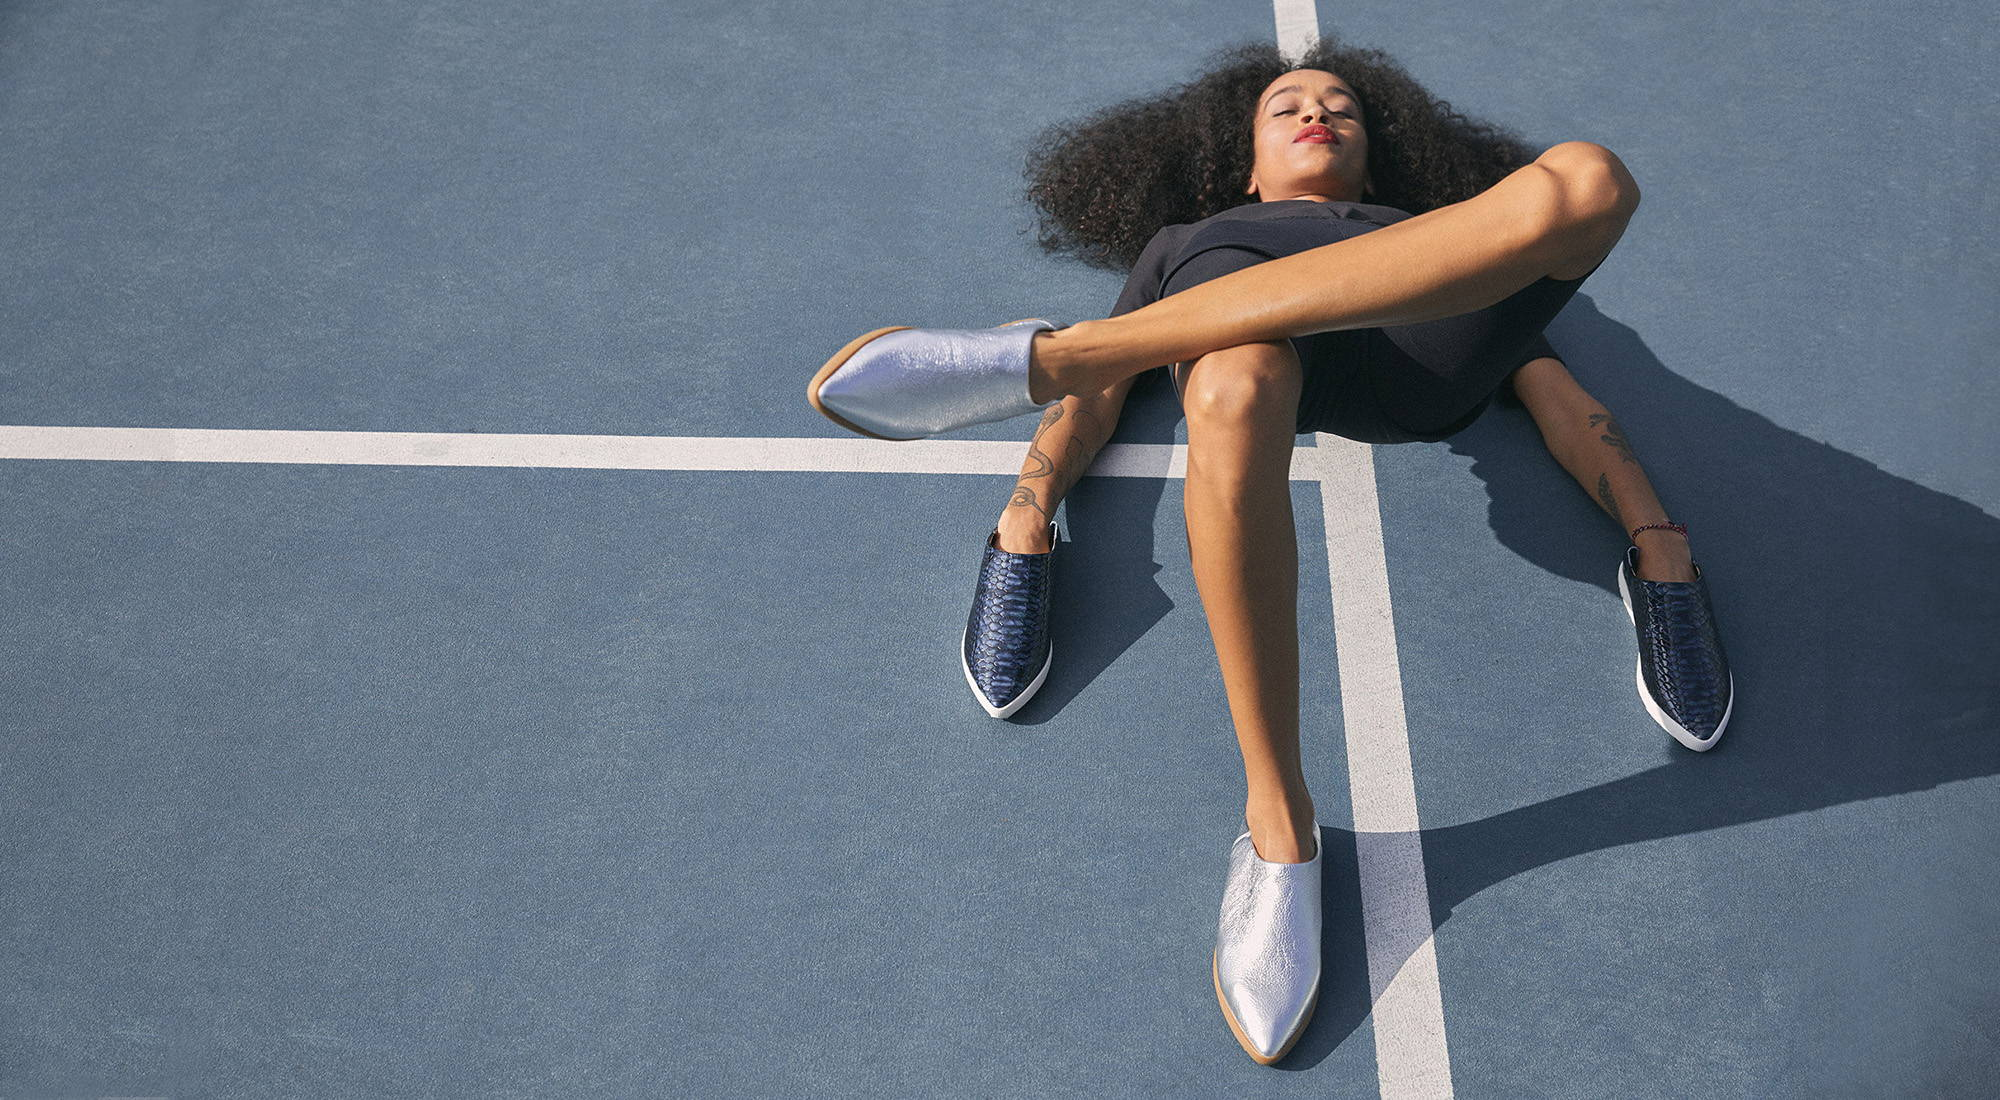 Woman laying on tennis court with shoes